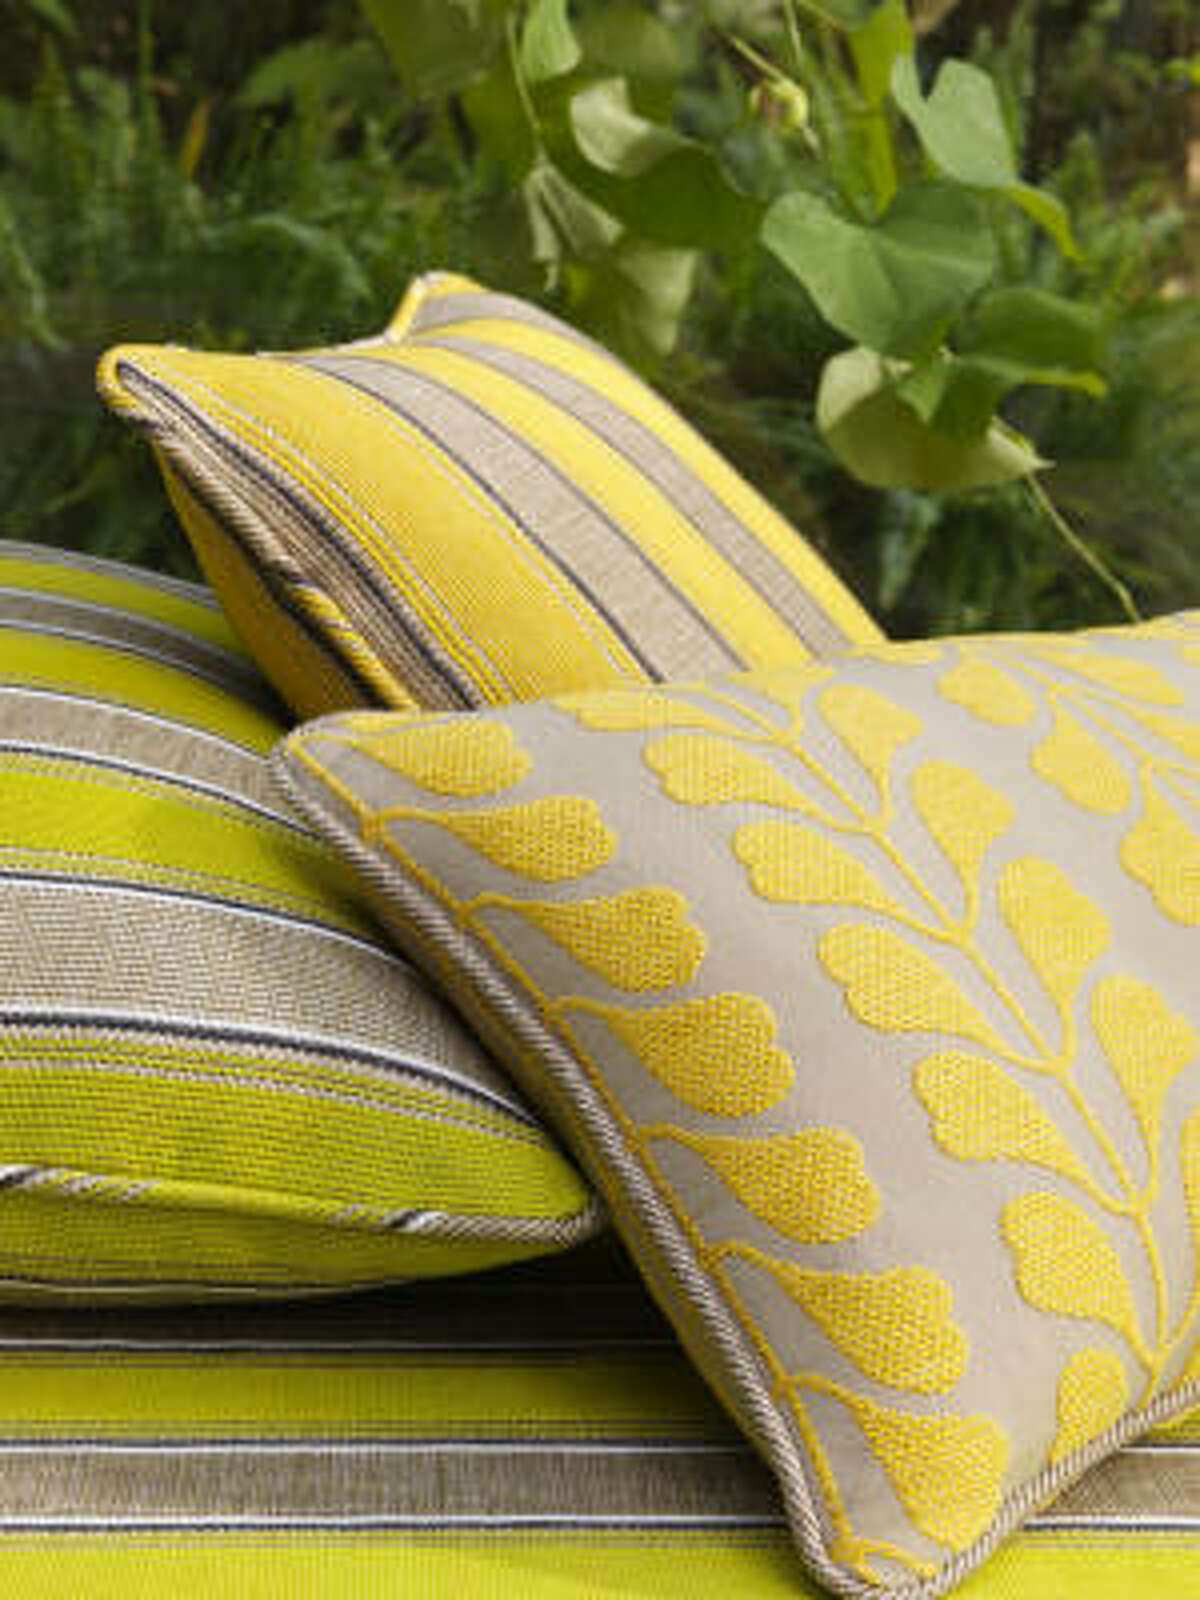 It works well to repeat the colors in the garden. Brown prefers stronger, more graphic patterns in exterior spaces, such as this new Zancudo line of outdoor fabrics from Osborne & Little.